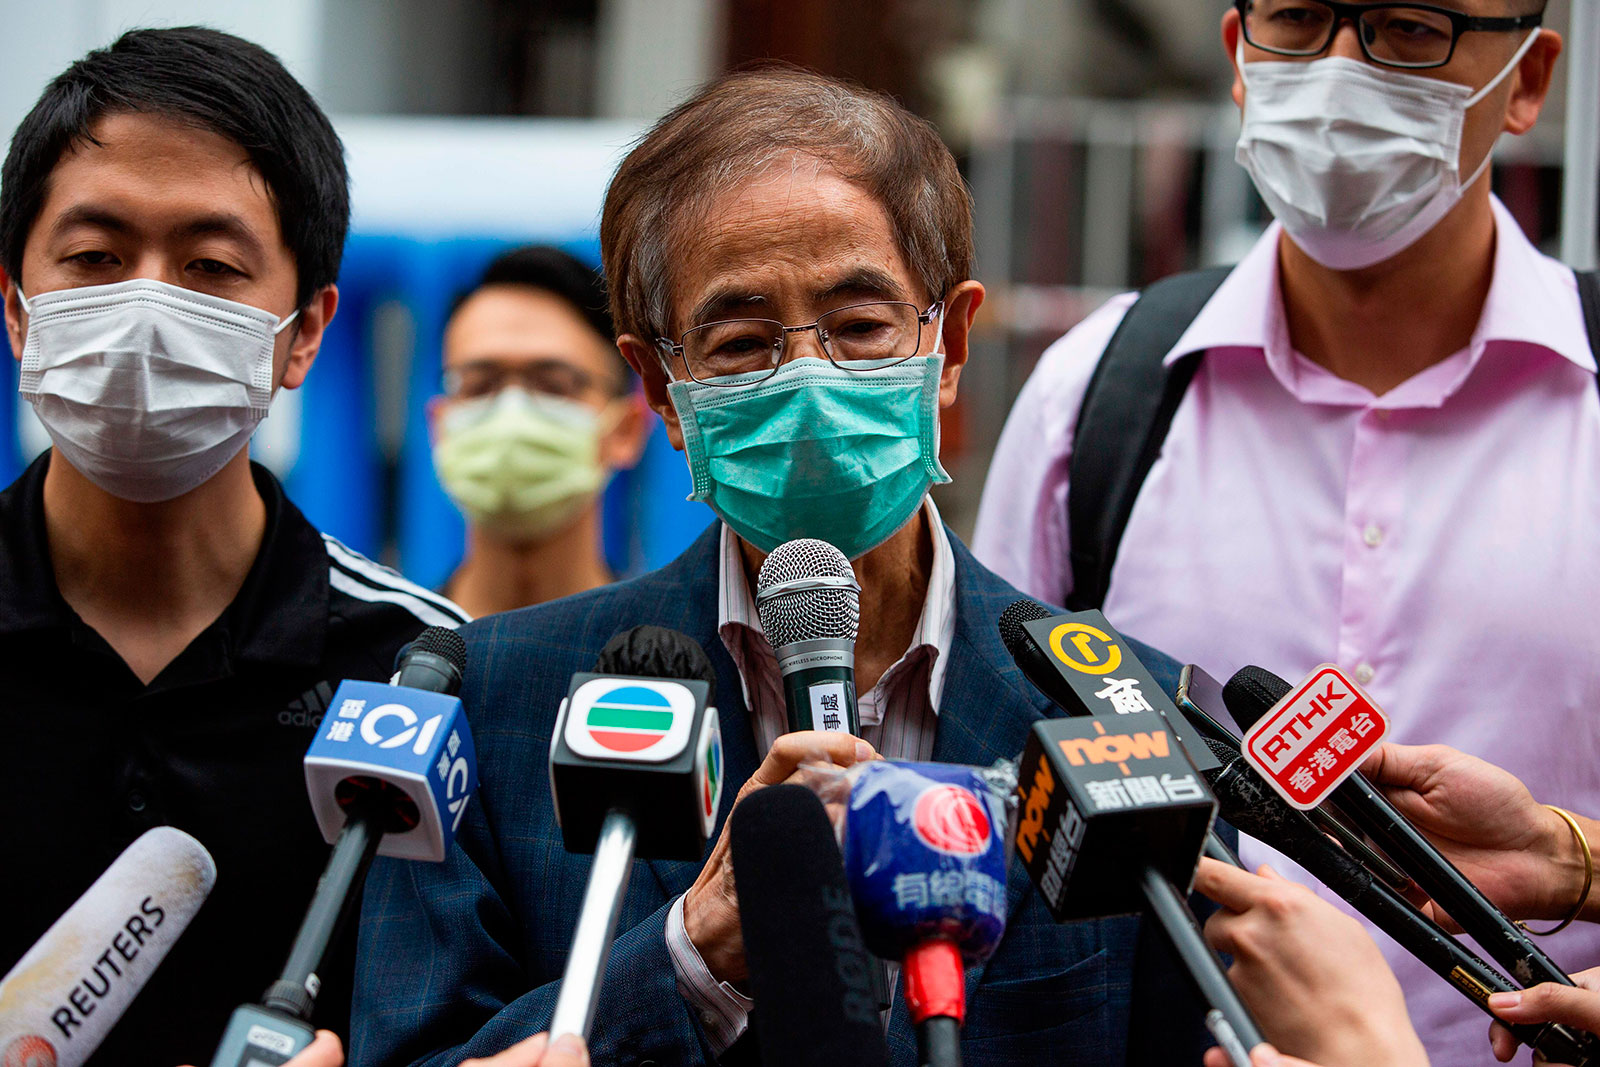 Former lawmaker and pro-democracy activist Martin Lee talks to members of the media as he leaves the Central District police station in Hong Kong on April 18.